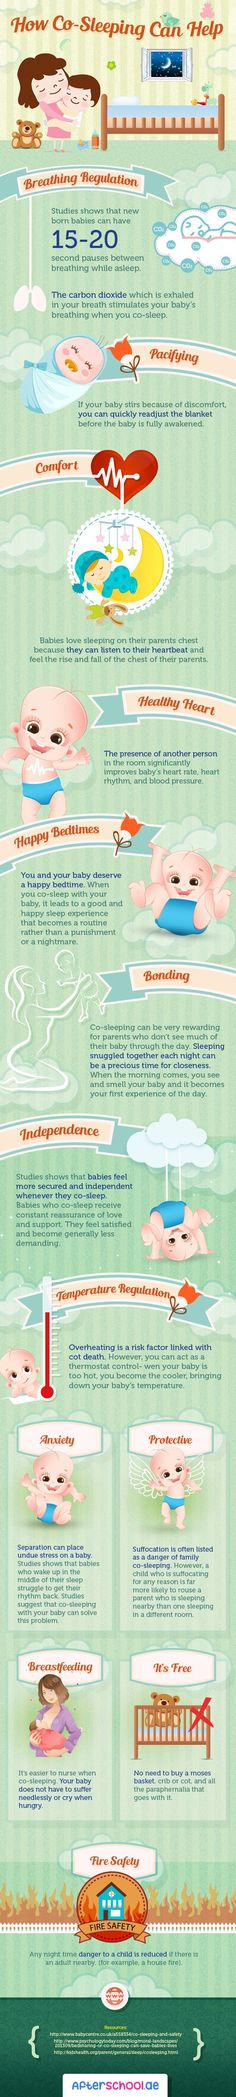 Co-sleeping through room sharing or bed sharing can help a lot in terms of good sleep habit, kids safety, comfort and overall health.